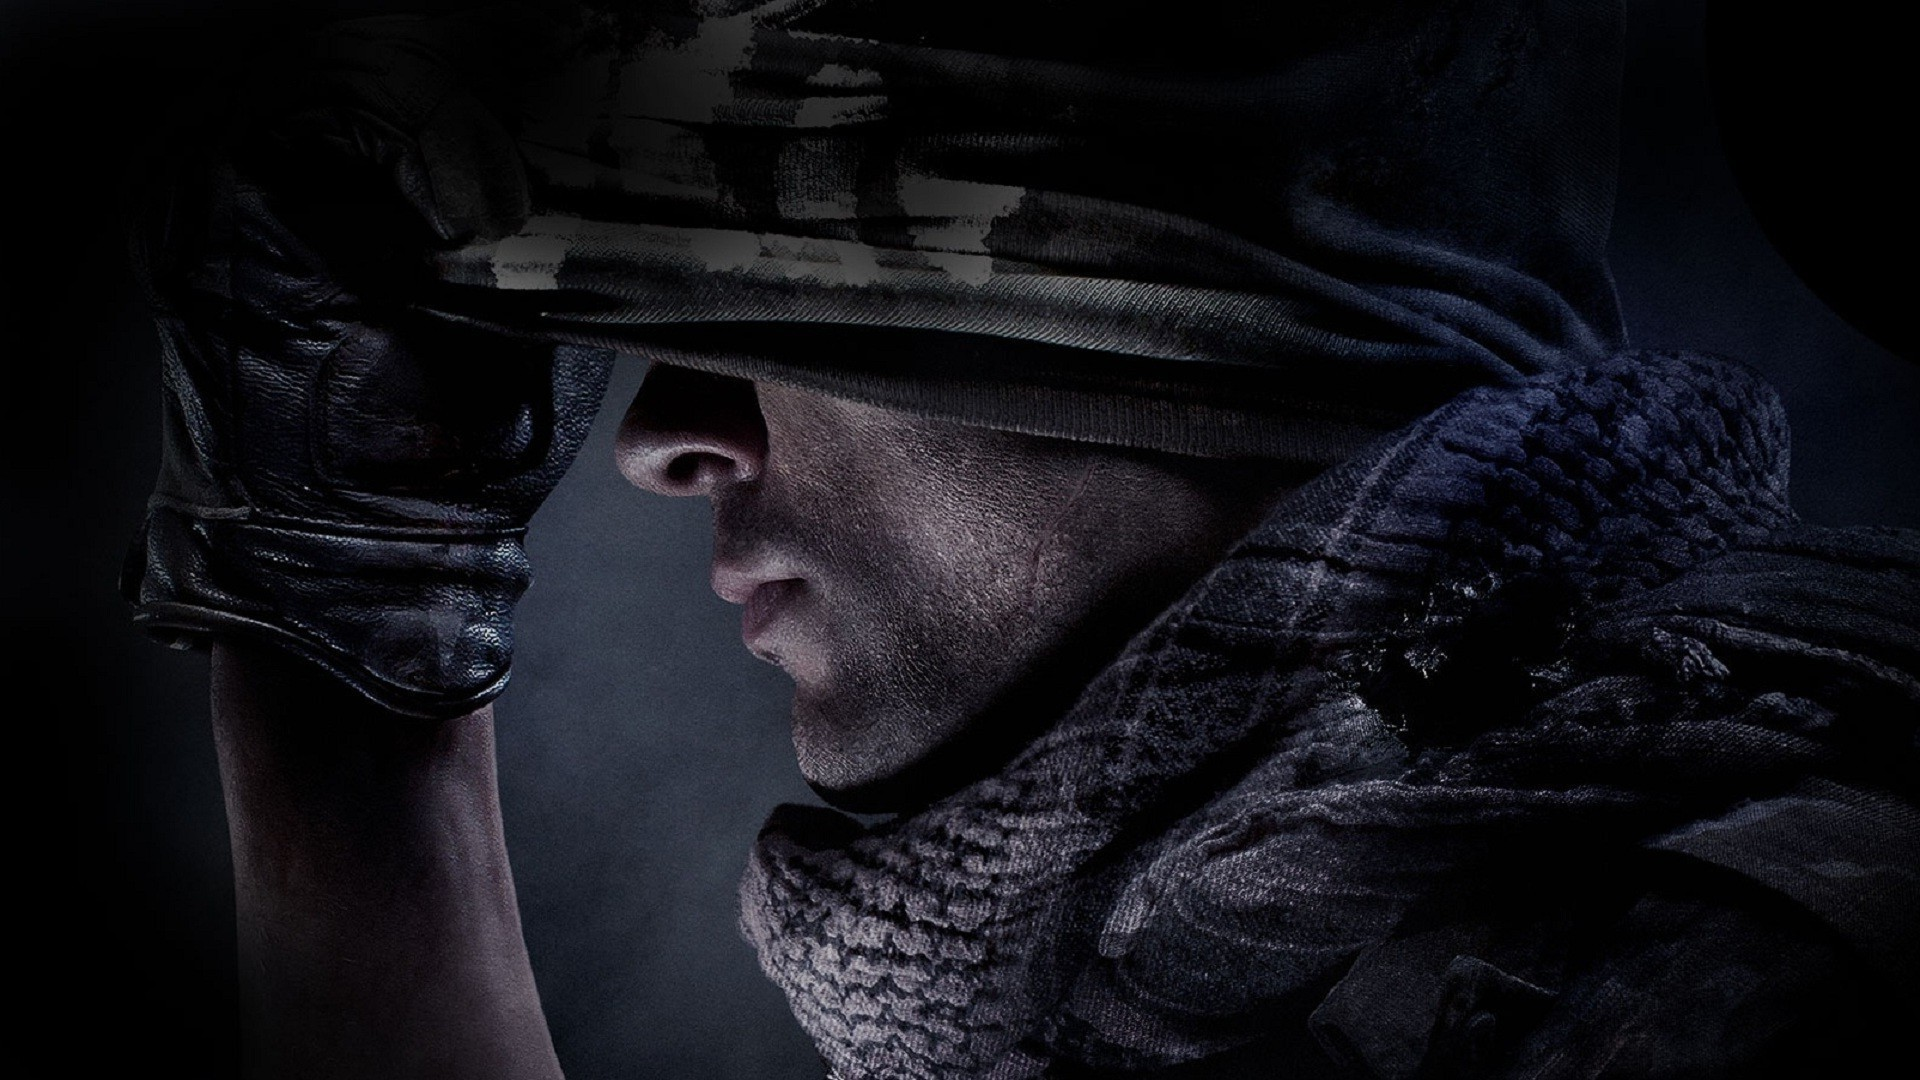 call of duty ghosts matchmaking List of errors, crashes, freezes, fov, ram, lag and performance issues with workarounds to fix them in call of duty ghosts.